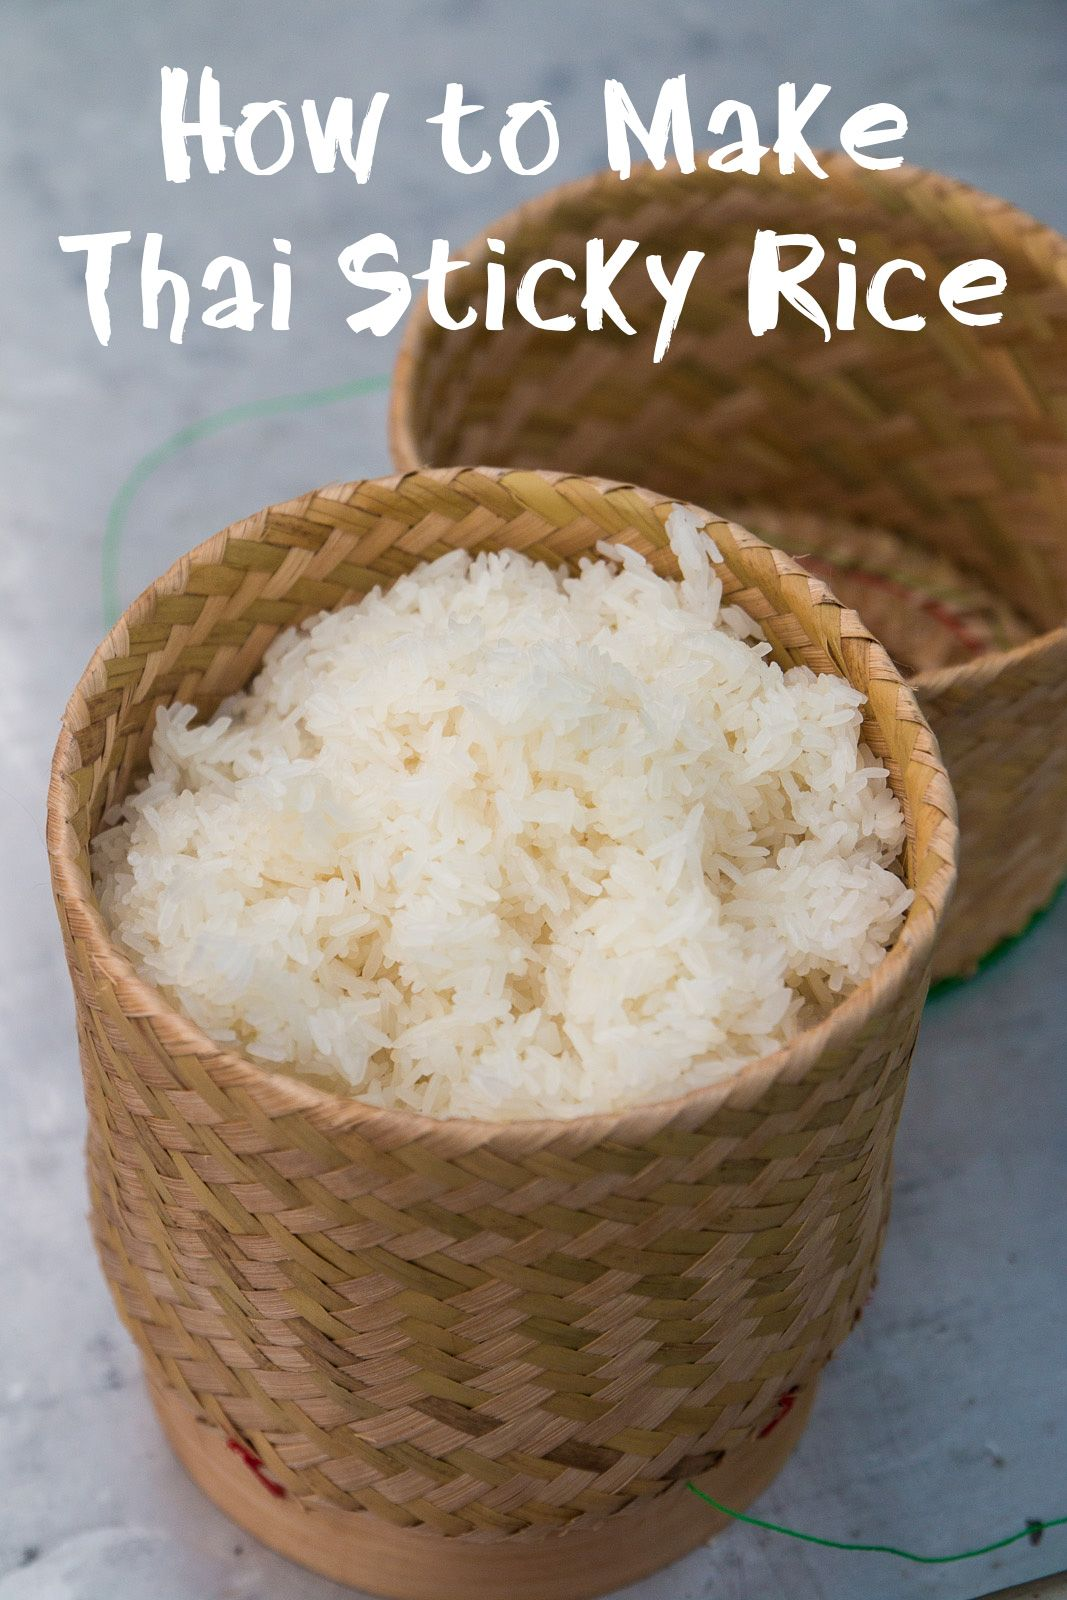 How to Make Thai Sticky Rice (So It's Fluffy and Moist)